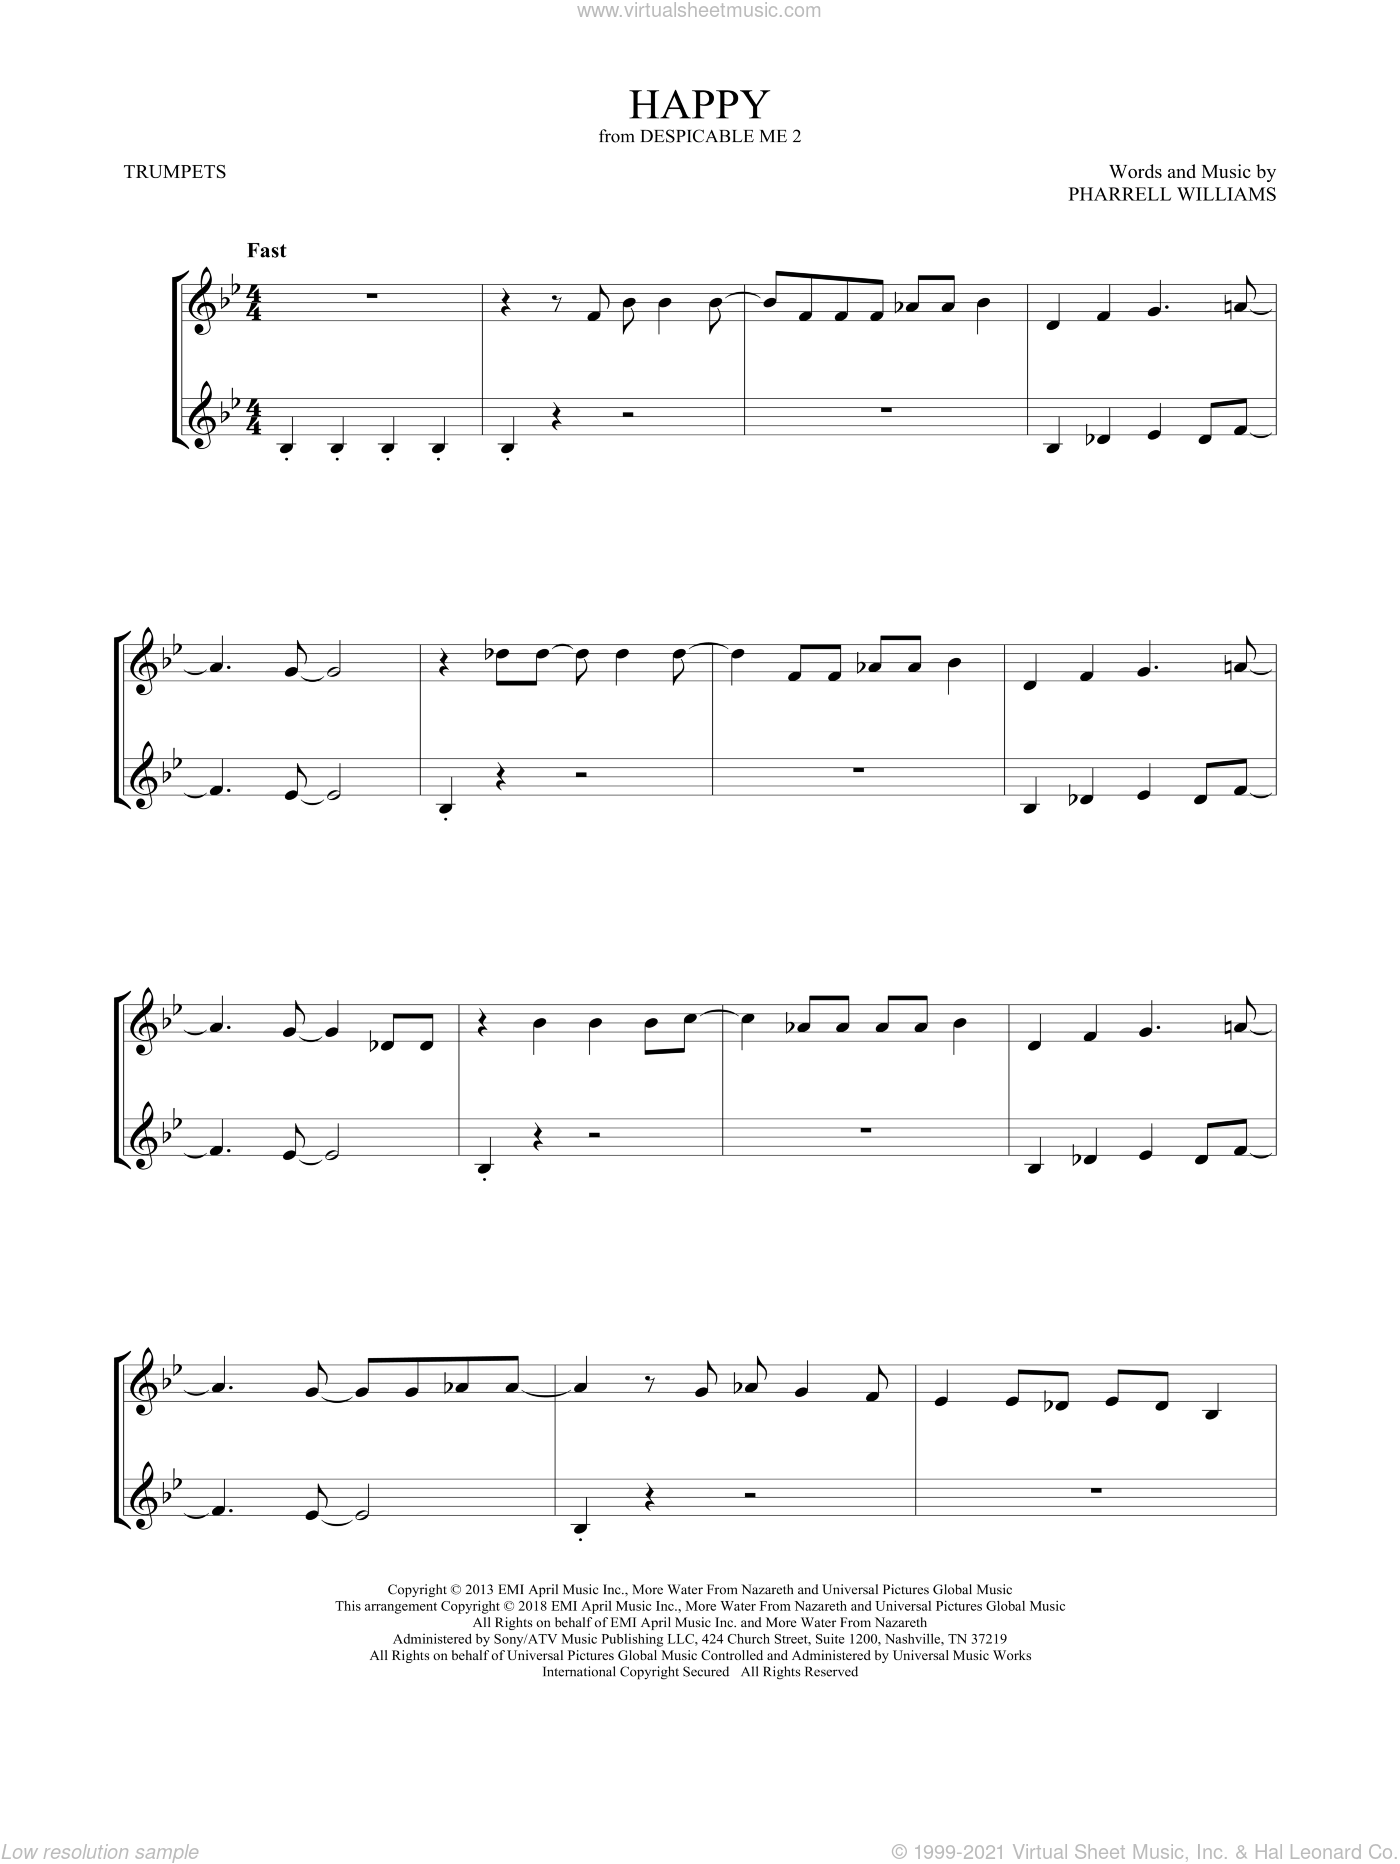 Happy (from Despicable Me 2) sheet music for two trumpets (duet, duets) by Pharrell and Pharrell Williams, intermediate skill level